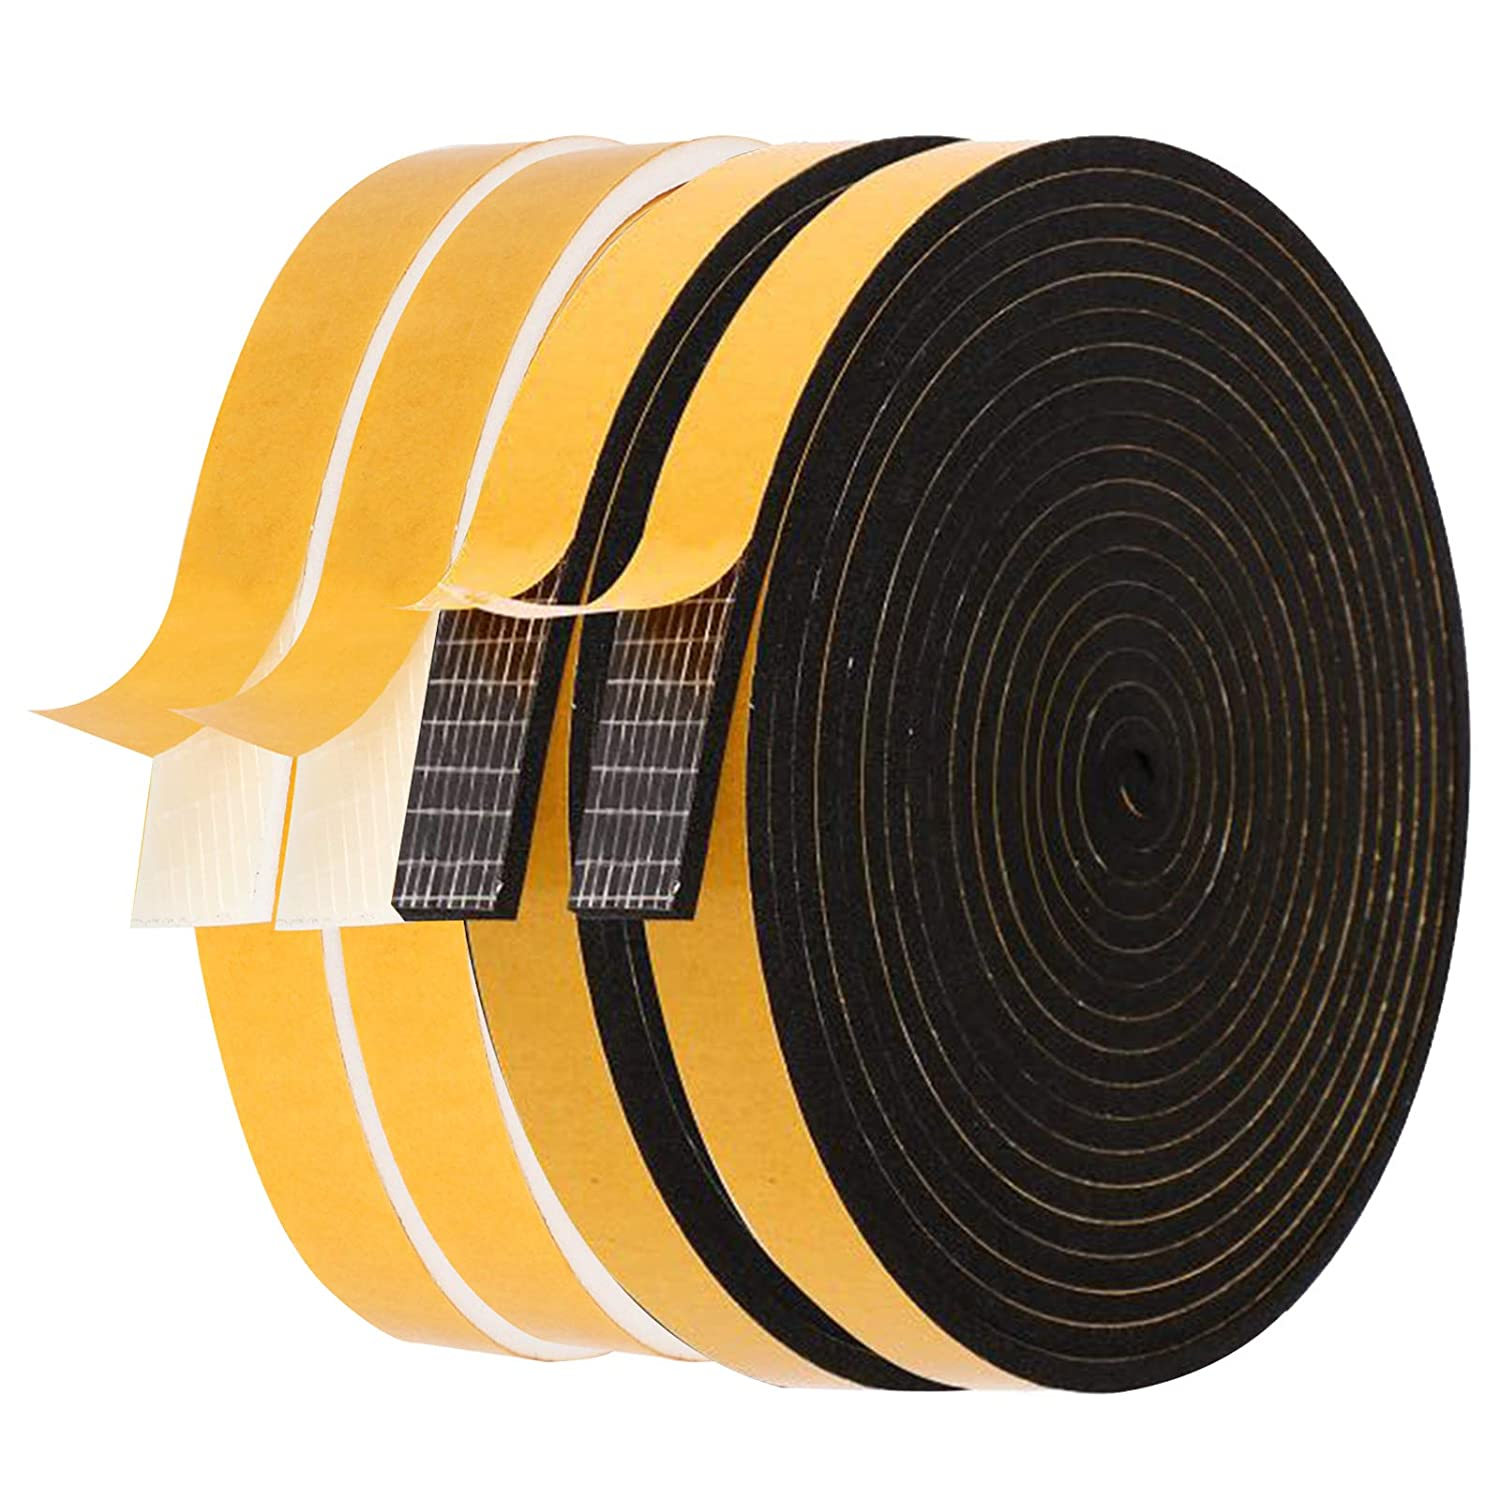 Max 72% OFF Foam Weather 1 year warranty Stripping-4 Rolls 1 2 Inch X Wide T Thick 8